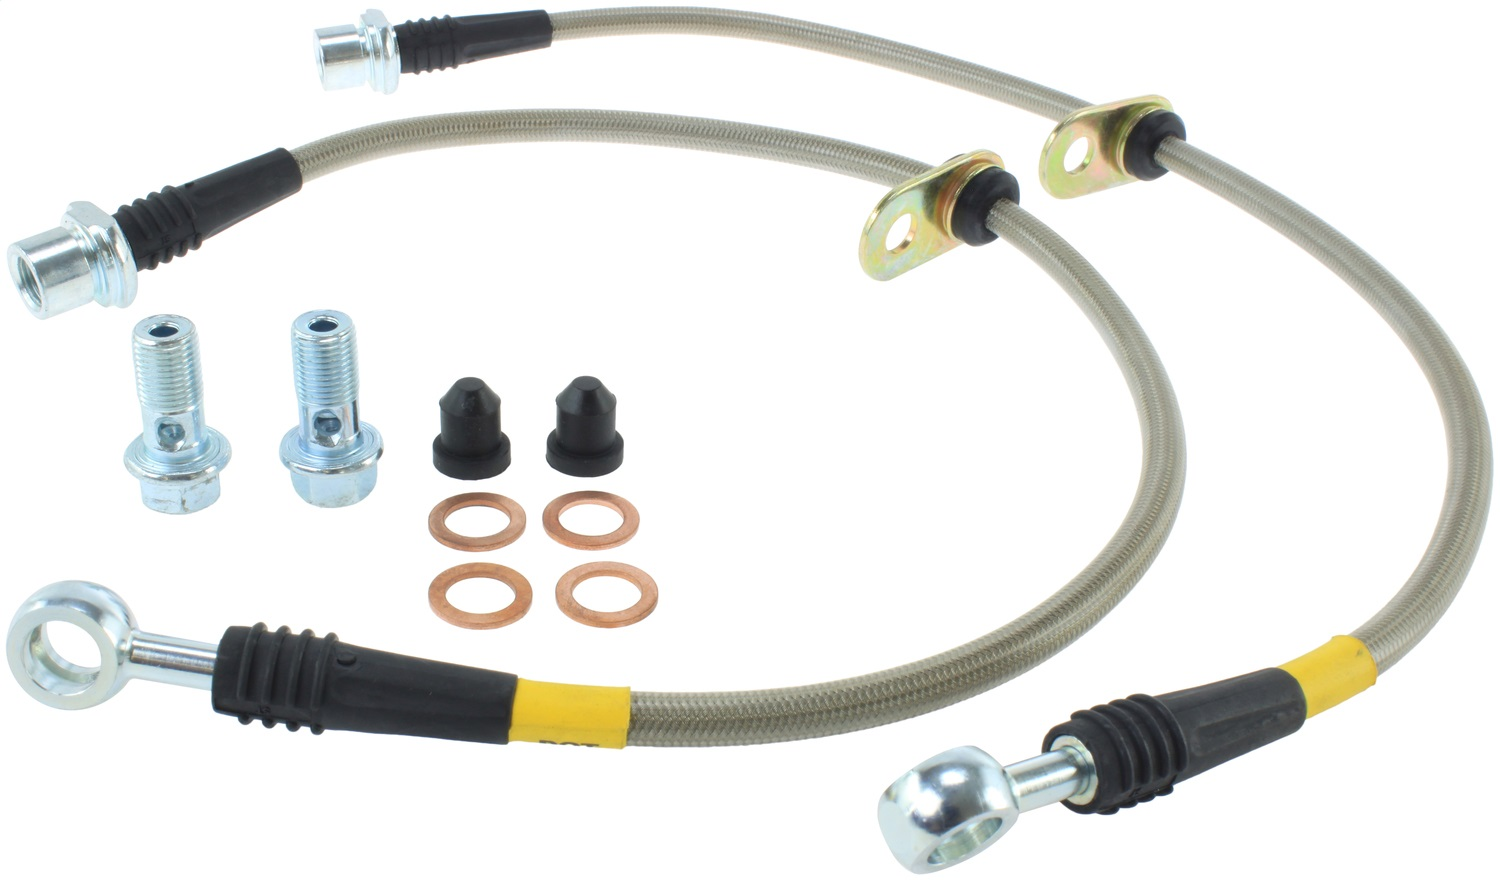 StopTech 950.44016 Stainless Steel Braided Brake Hose Kit Fits 05-15 Tacoma